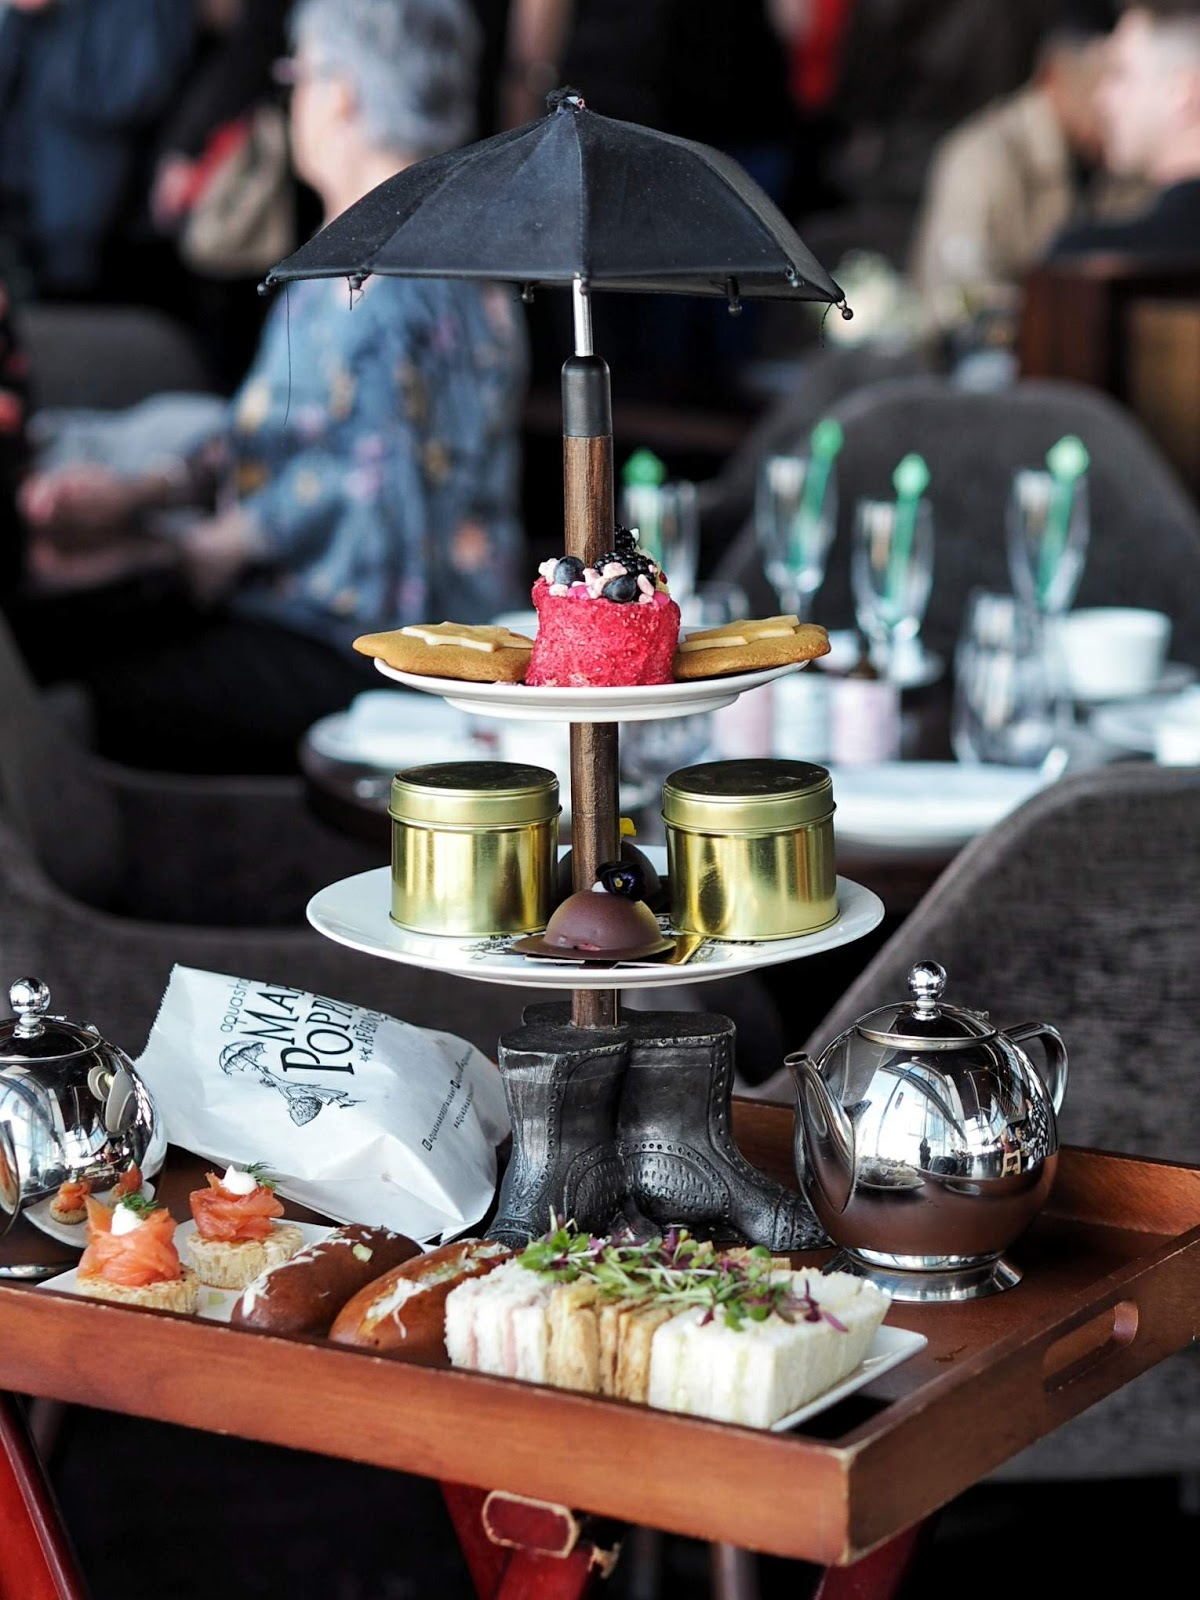 Just A Spoonful of Sugar: The Mary Poppins Afternoon Tea at Aqua